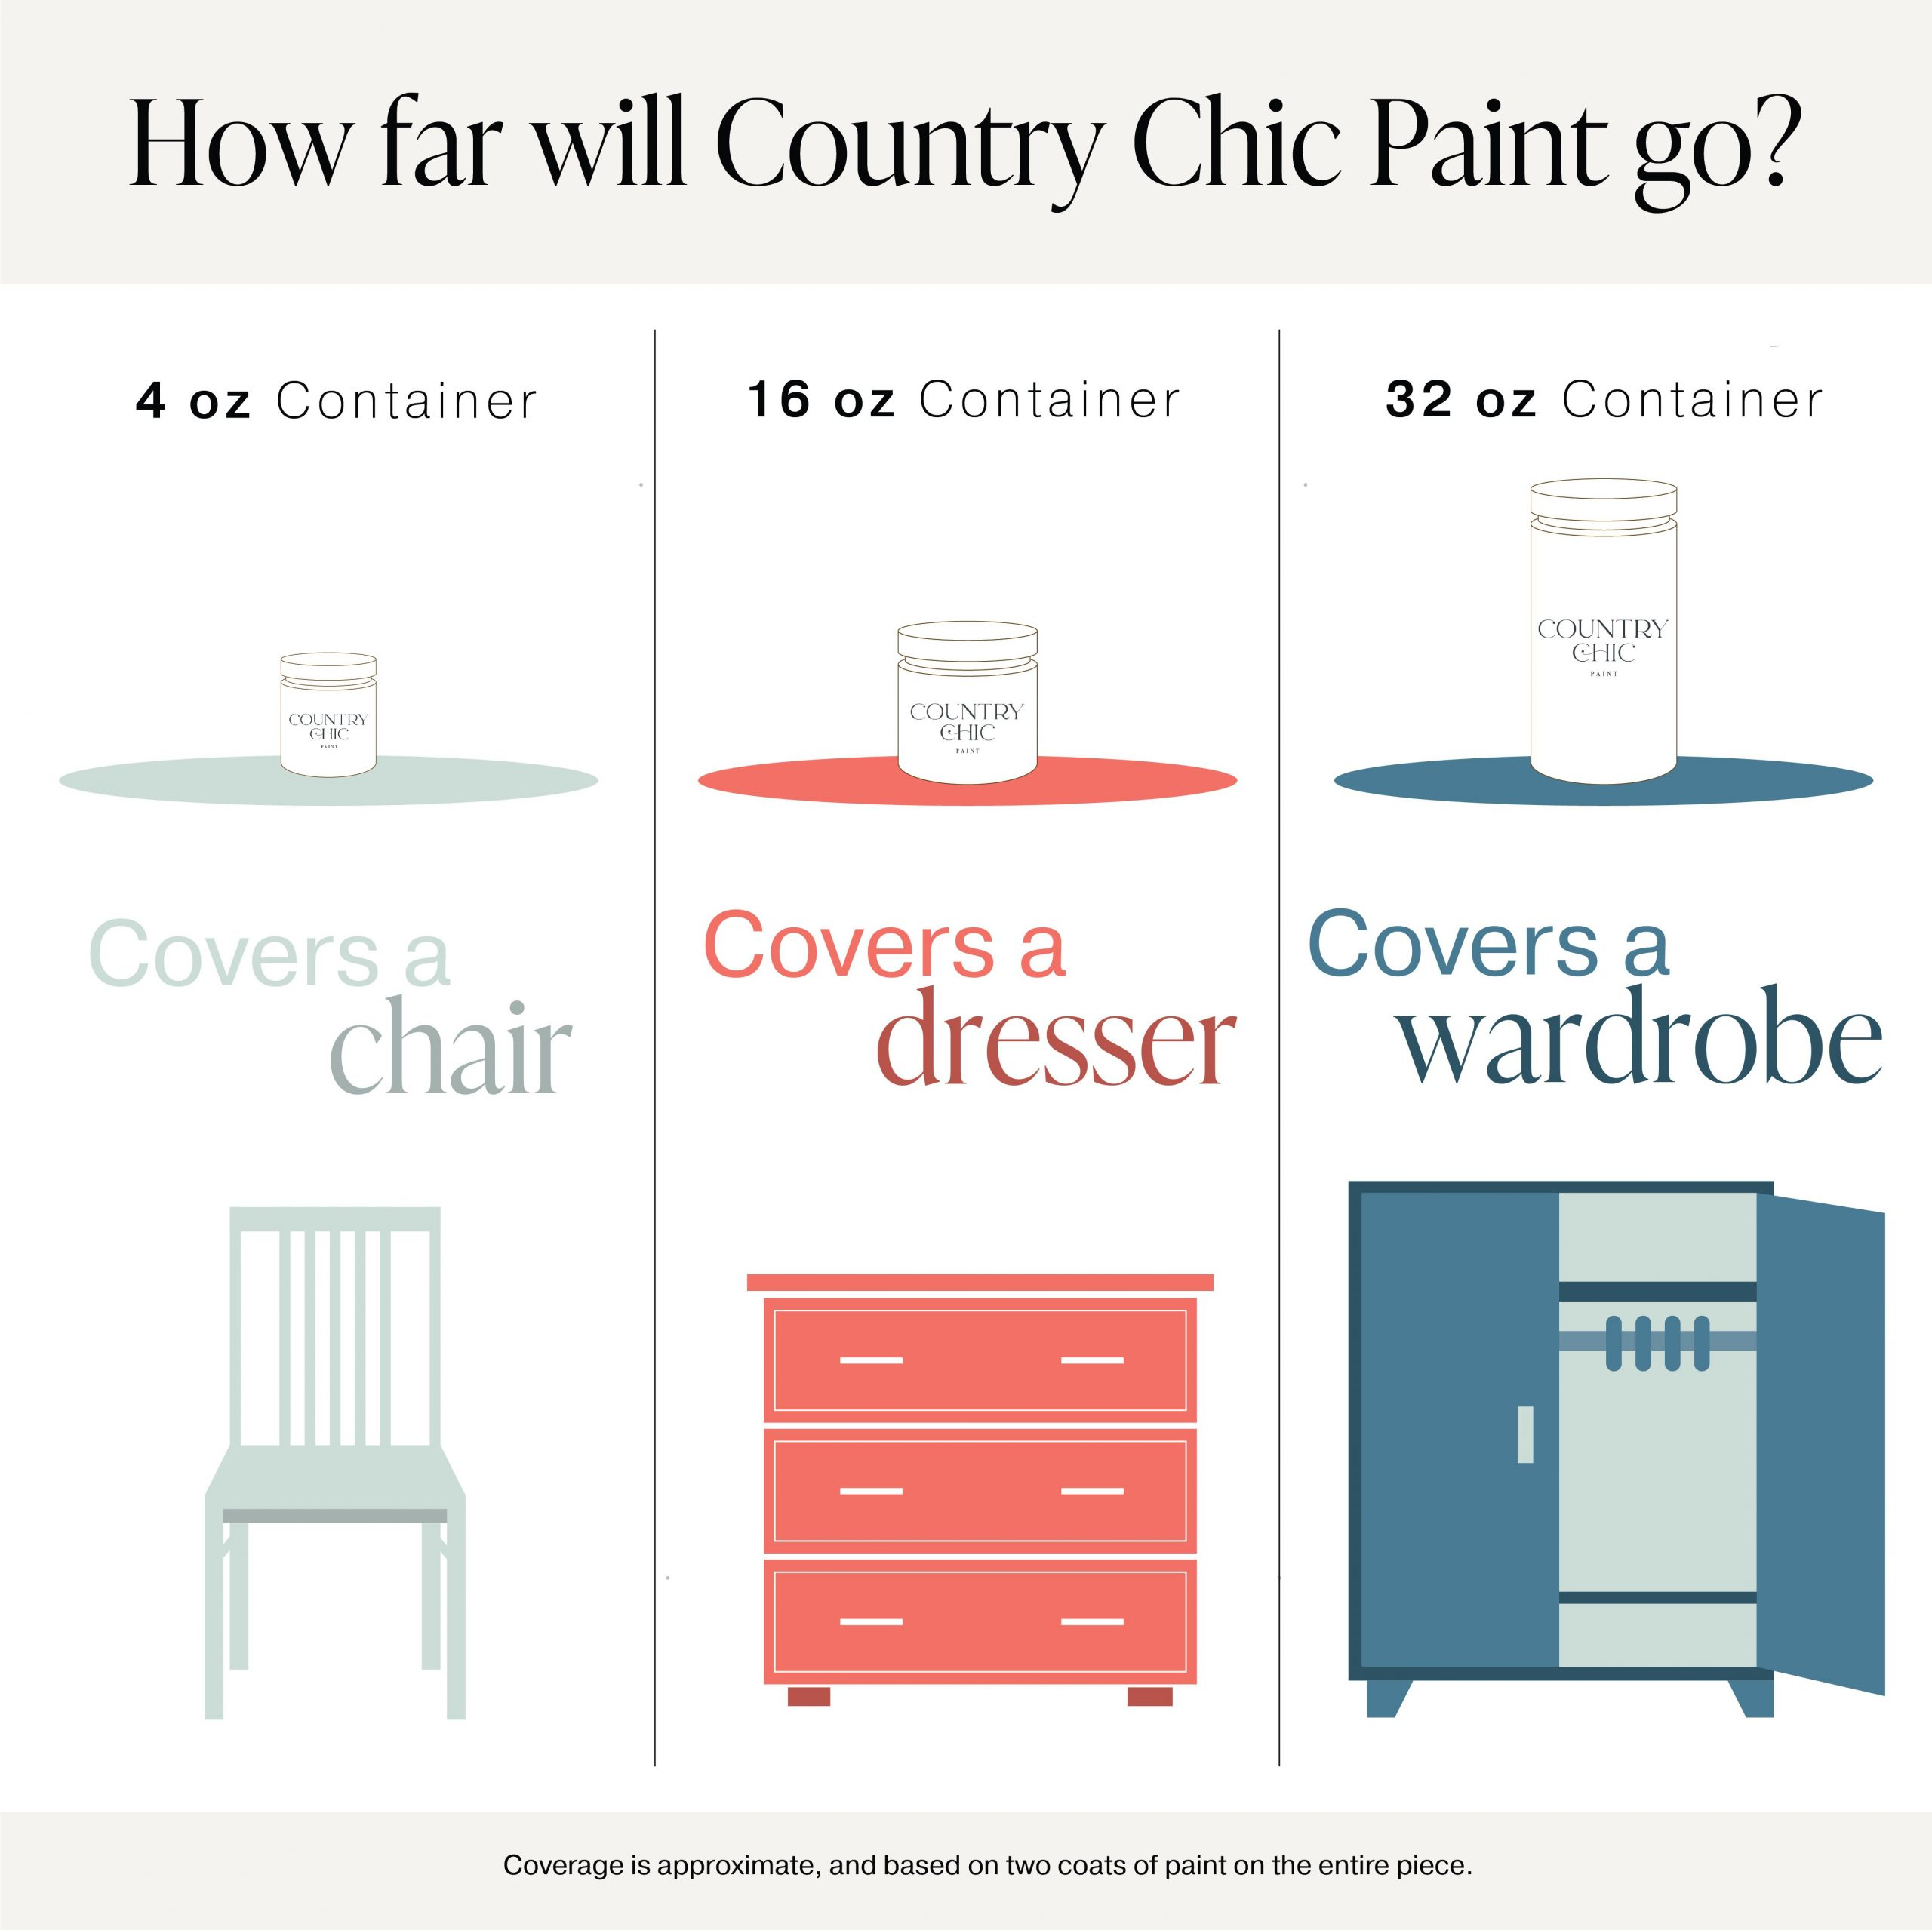 How far will Country Chic Paint go? Paint coverage guide for 4 oz jars, pints, and quarts